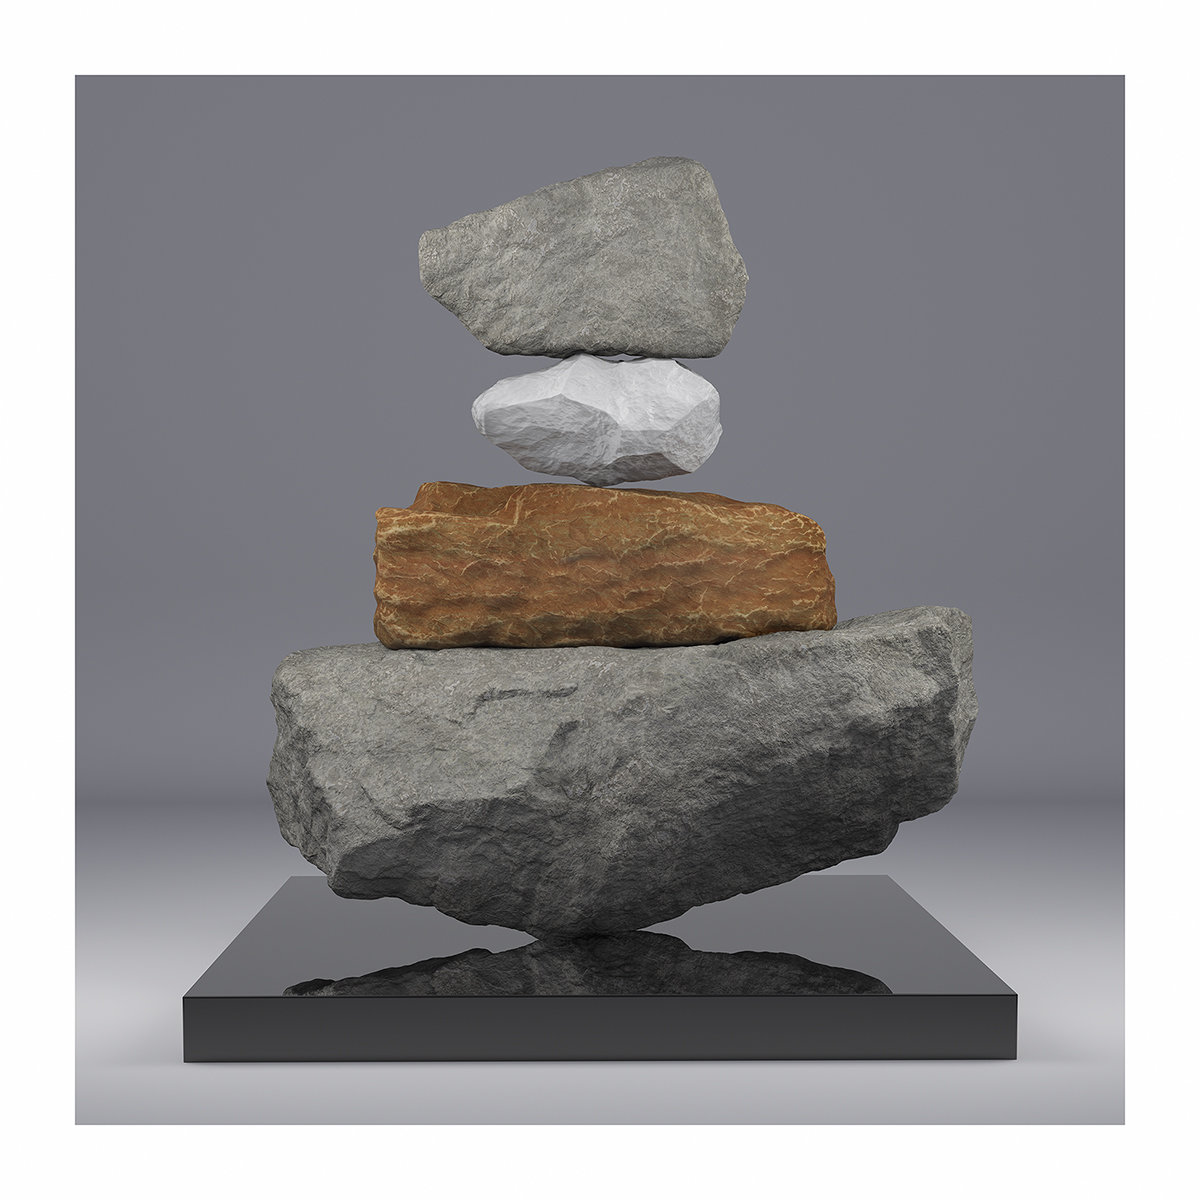 I will not Make any more Boring Art V 001 1 - 2020 - I will not Make any more Boring Art. V. (Rock Balancing)